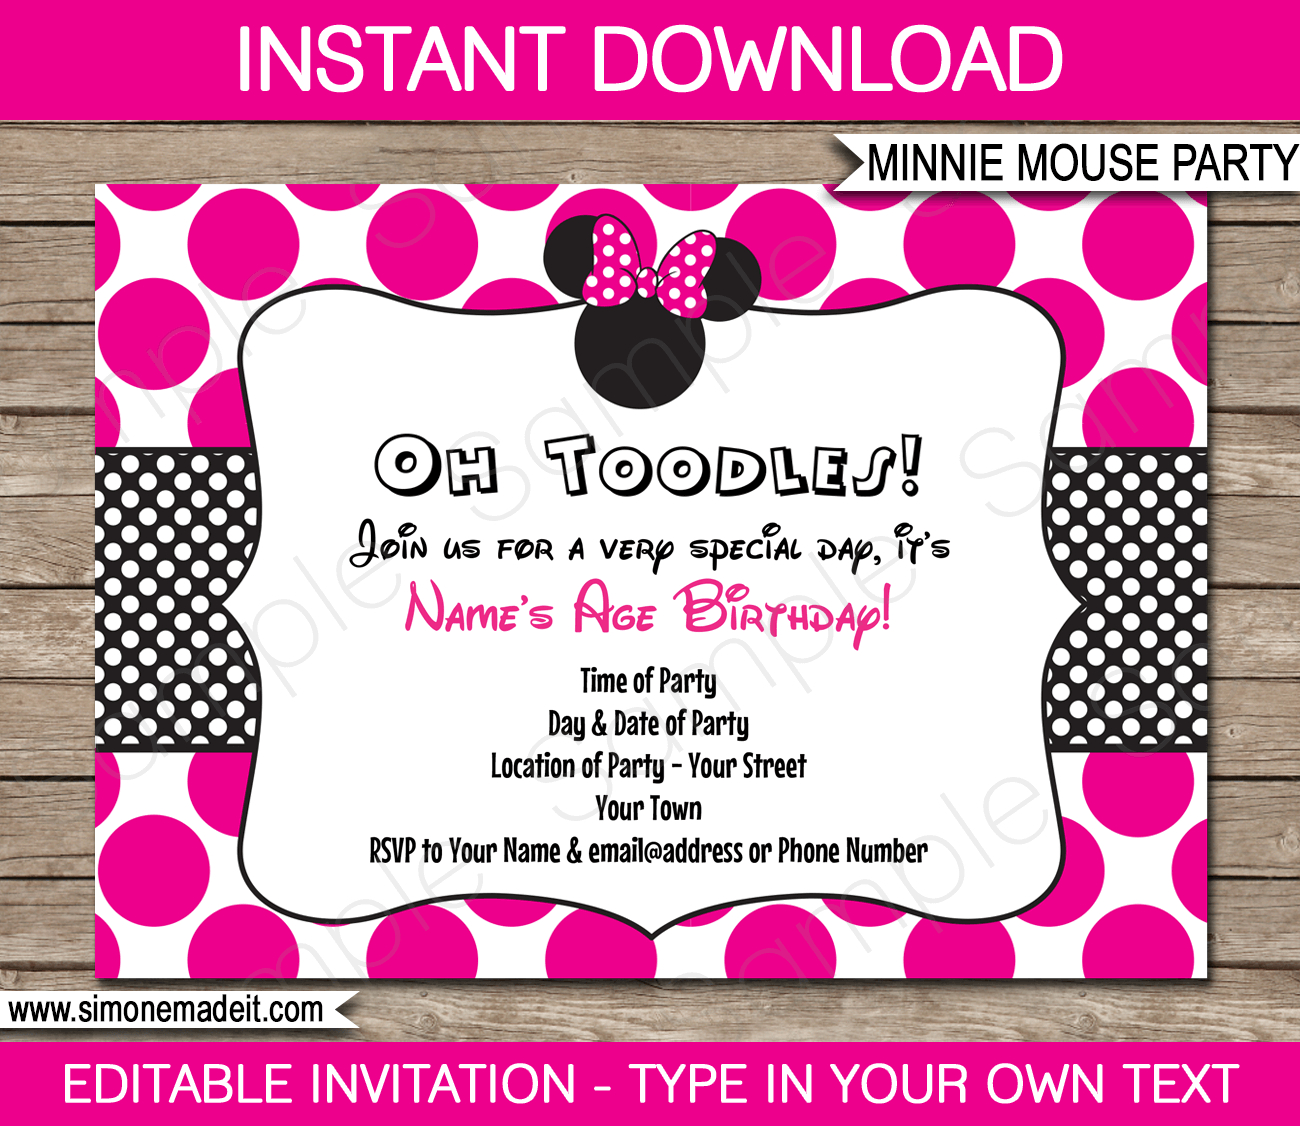 Minnie Mouse Party Invitations Template | Birthday Party - Free Printable Minnie Mouse Invitations